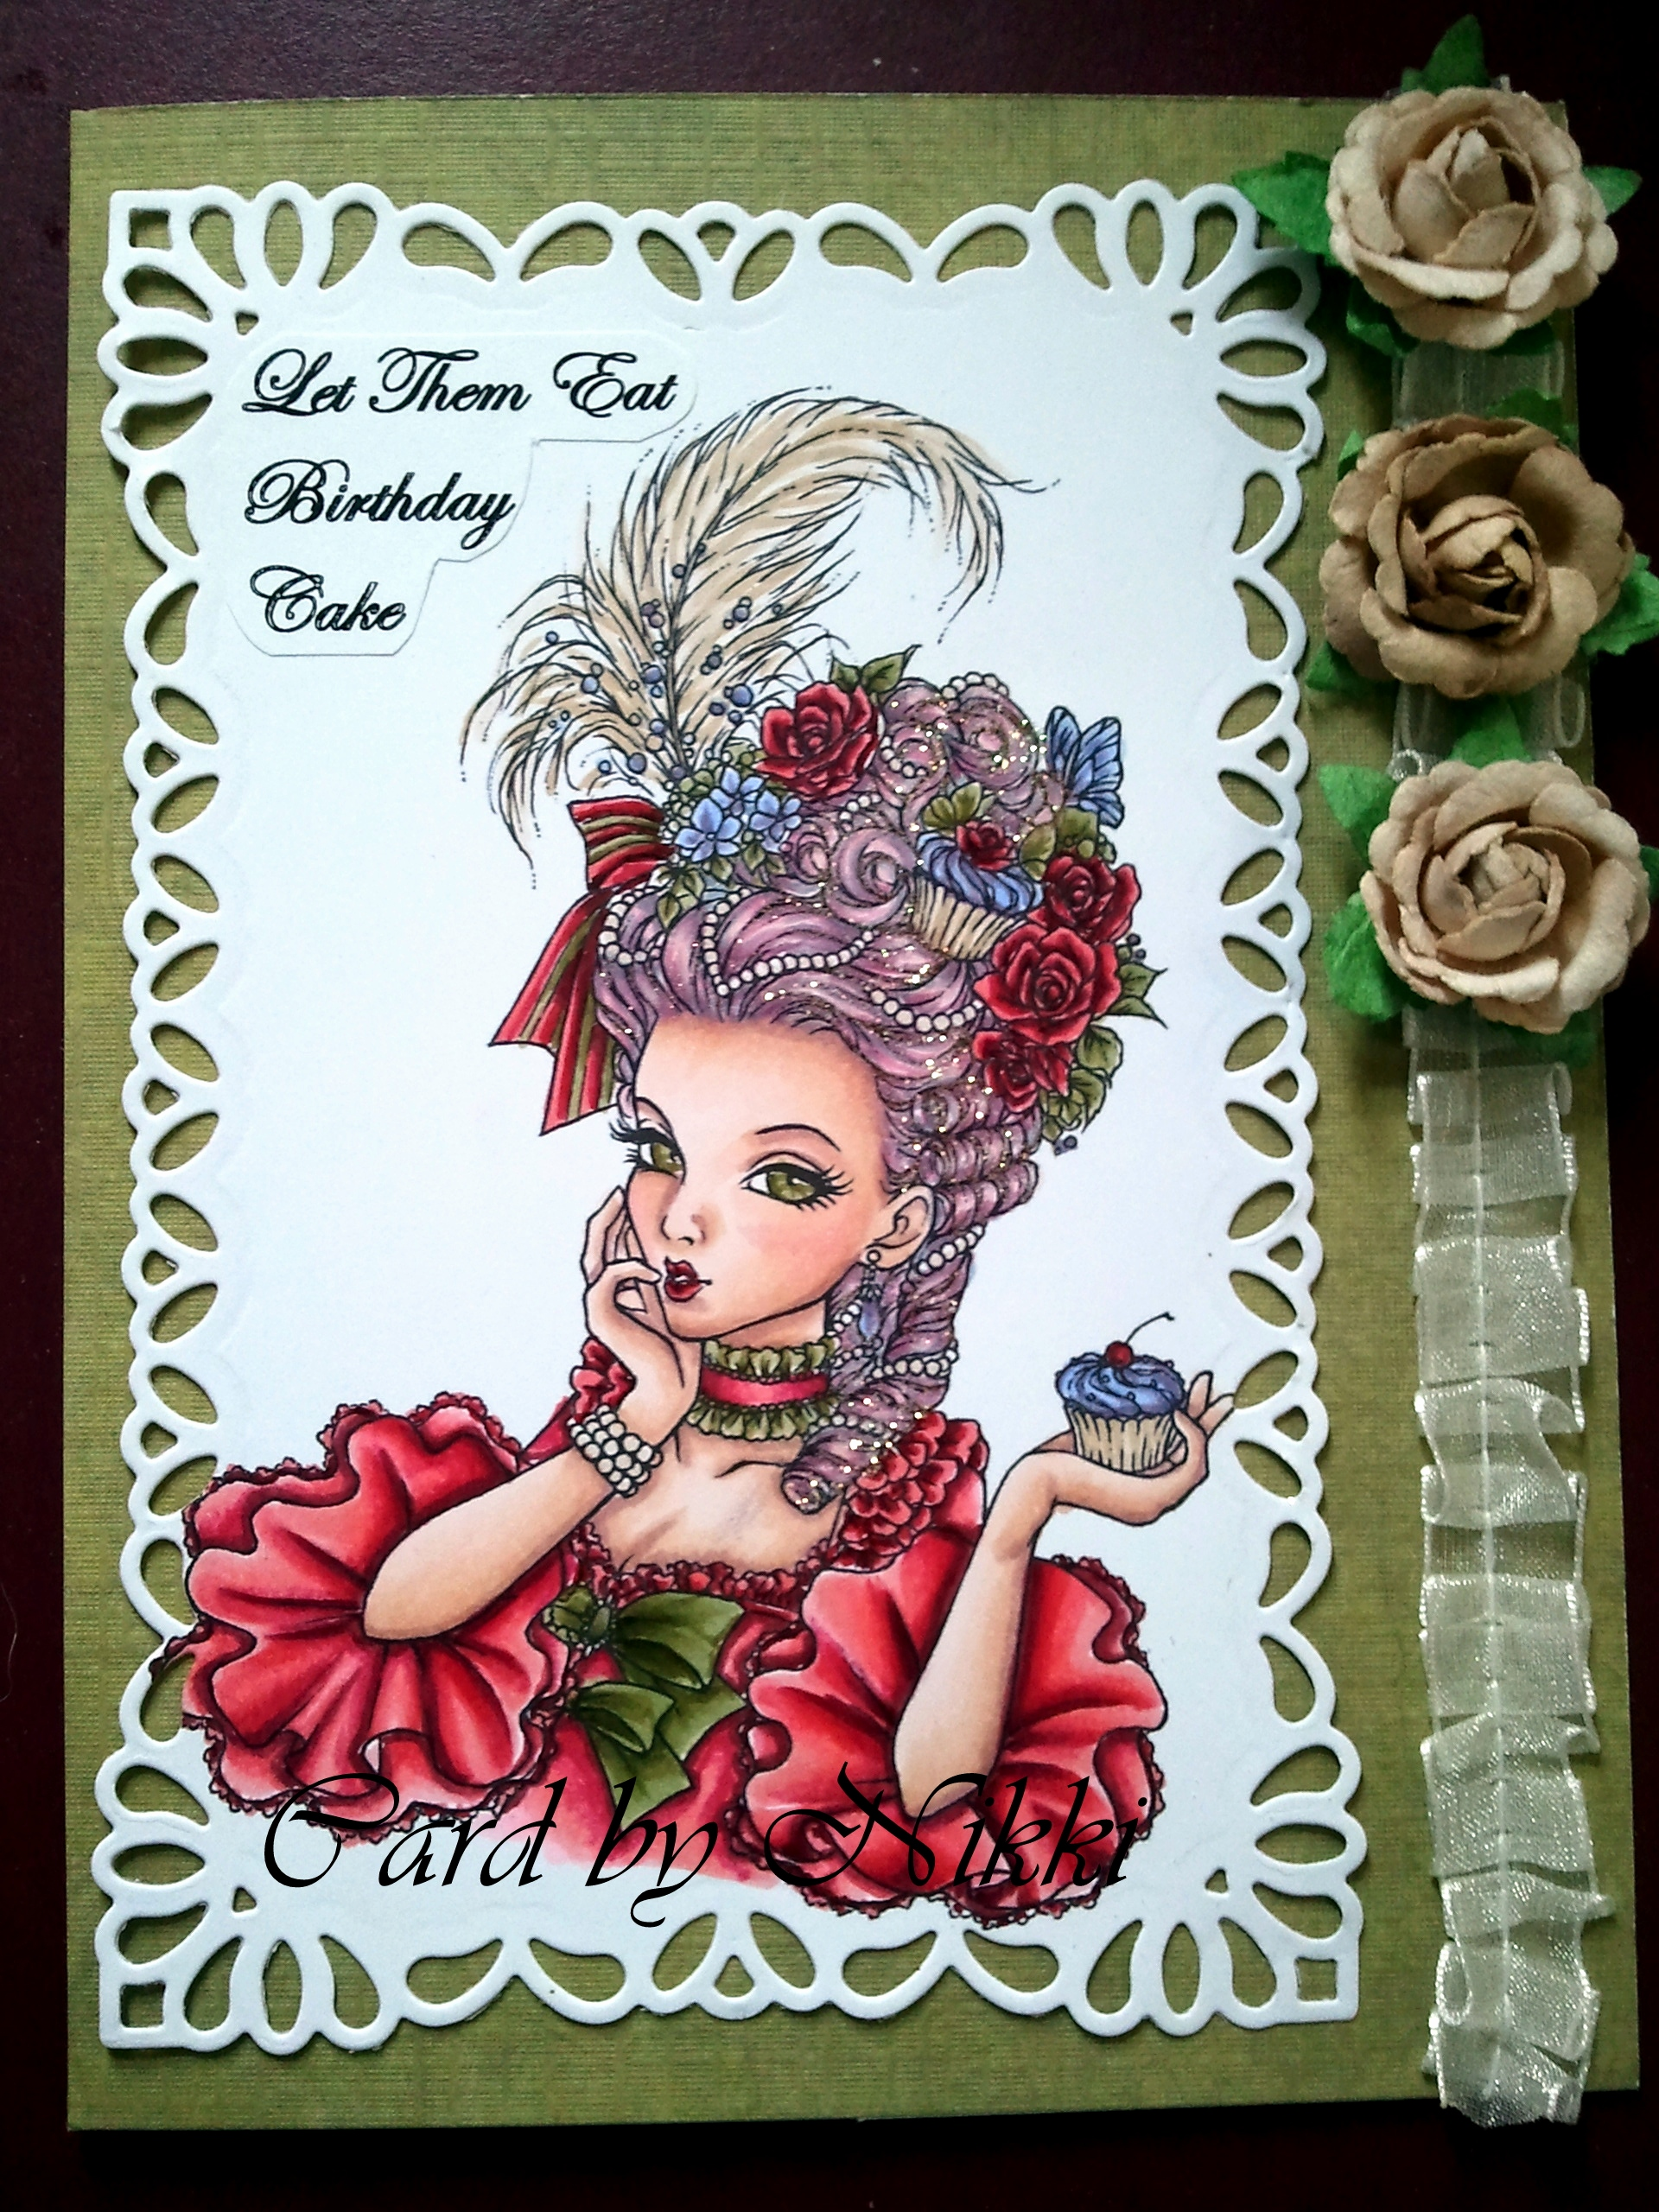 marie antoinette birthday card ; marie-antoinette-birthday-card-new-marie-antoinette-stamp-from-aurora-wings-of-marie-antoinette-birthday-card